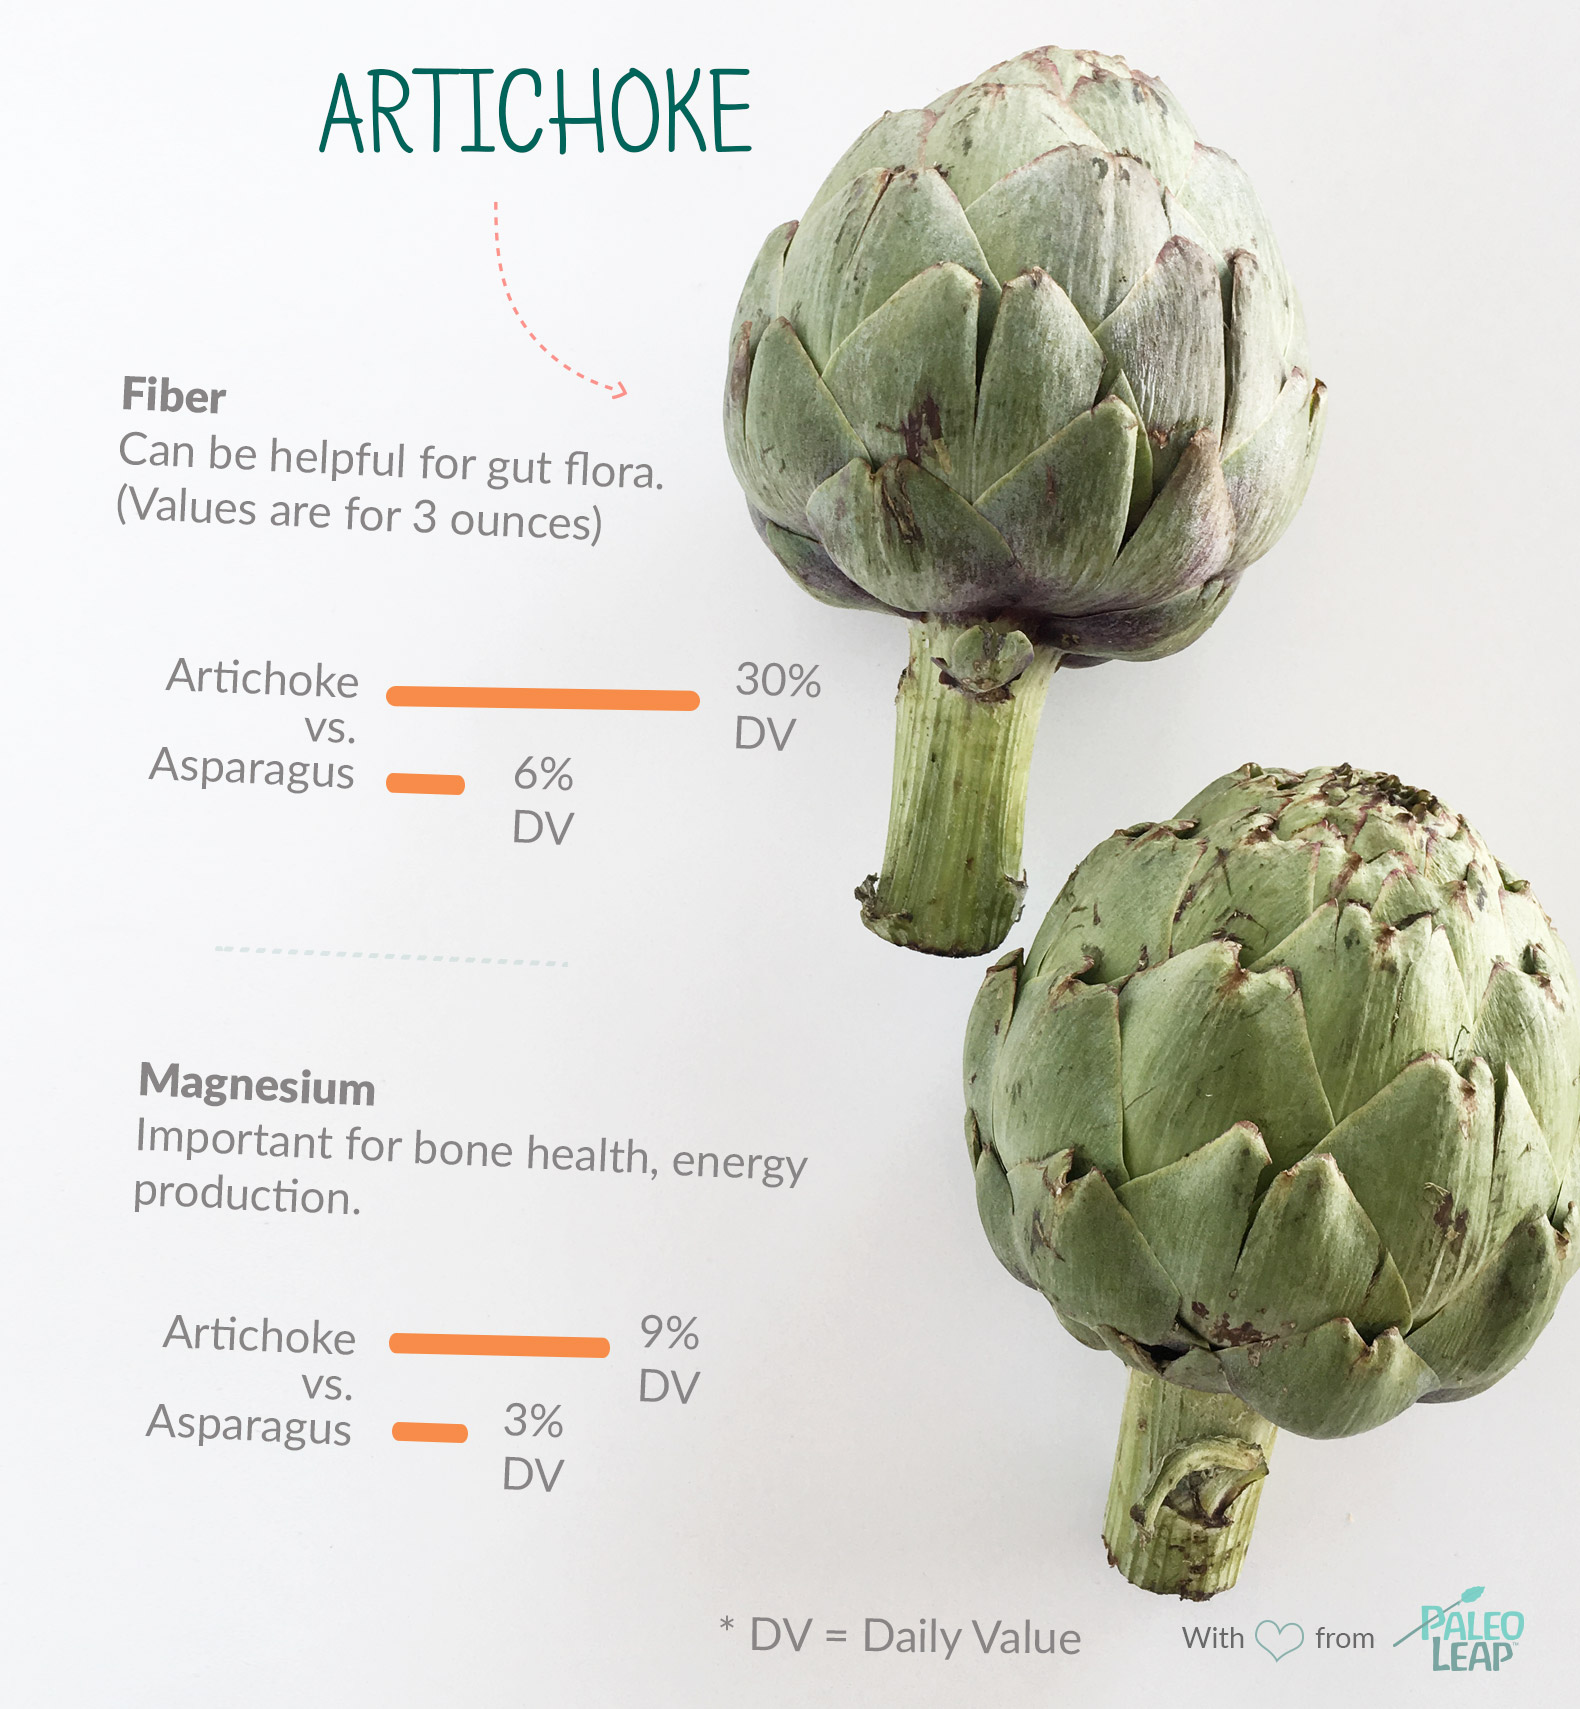 Artichoke highlights